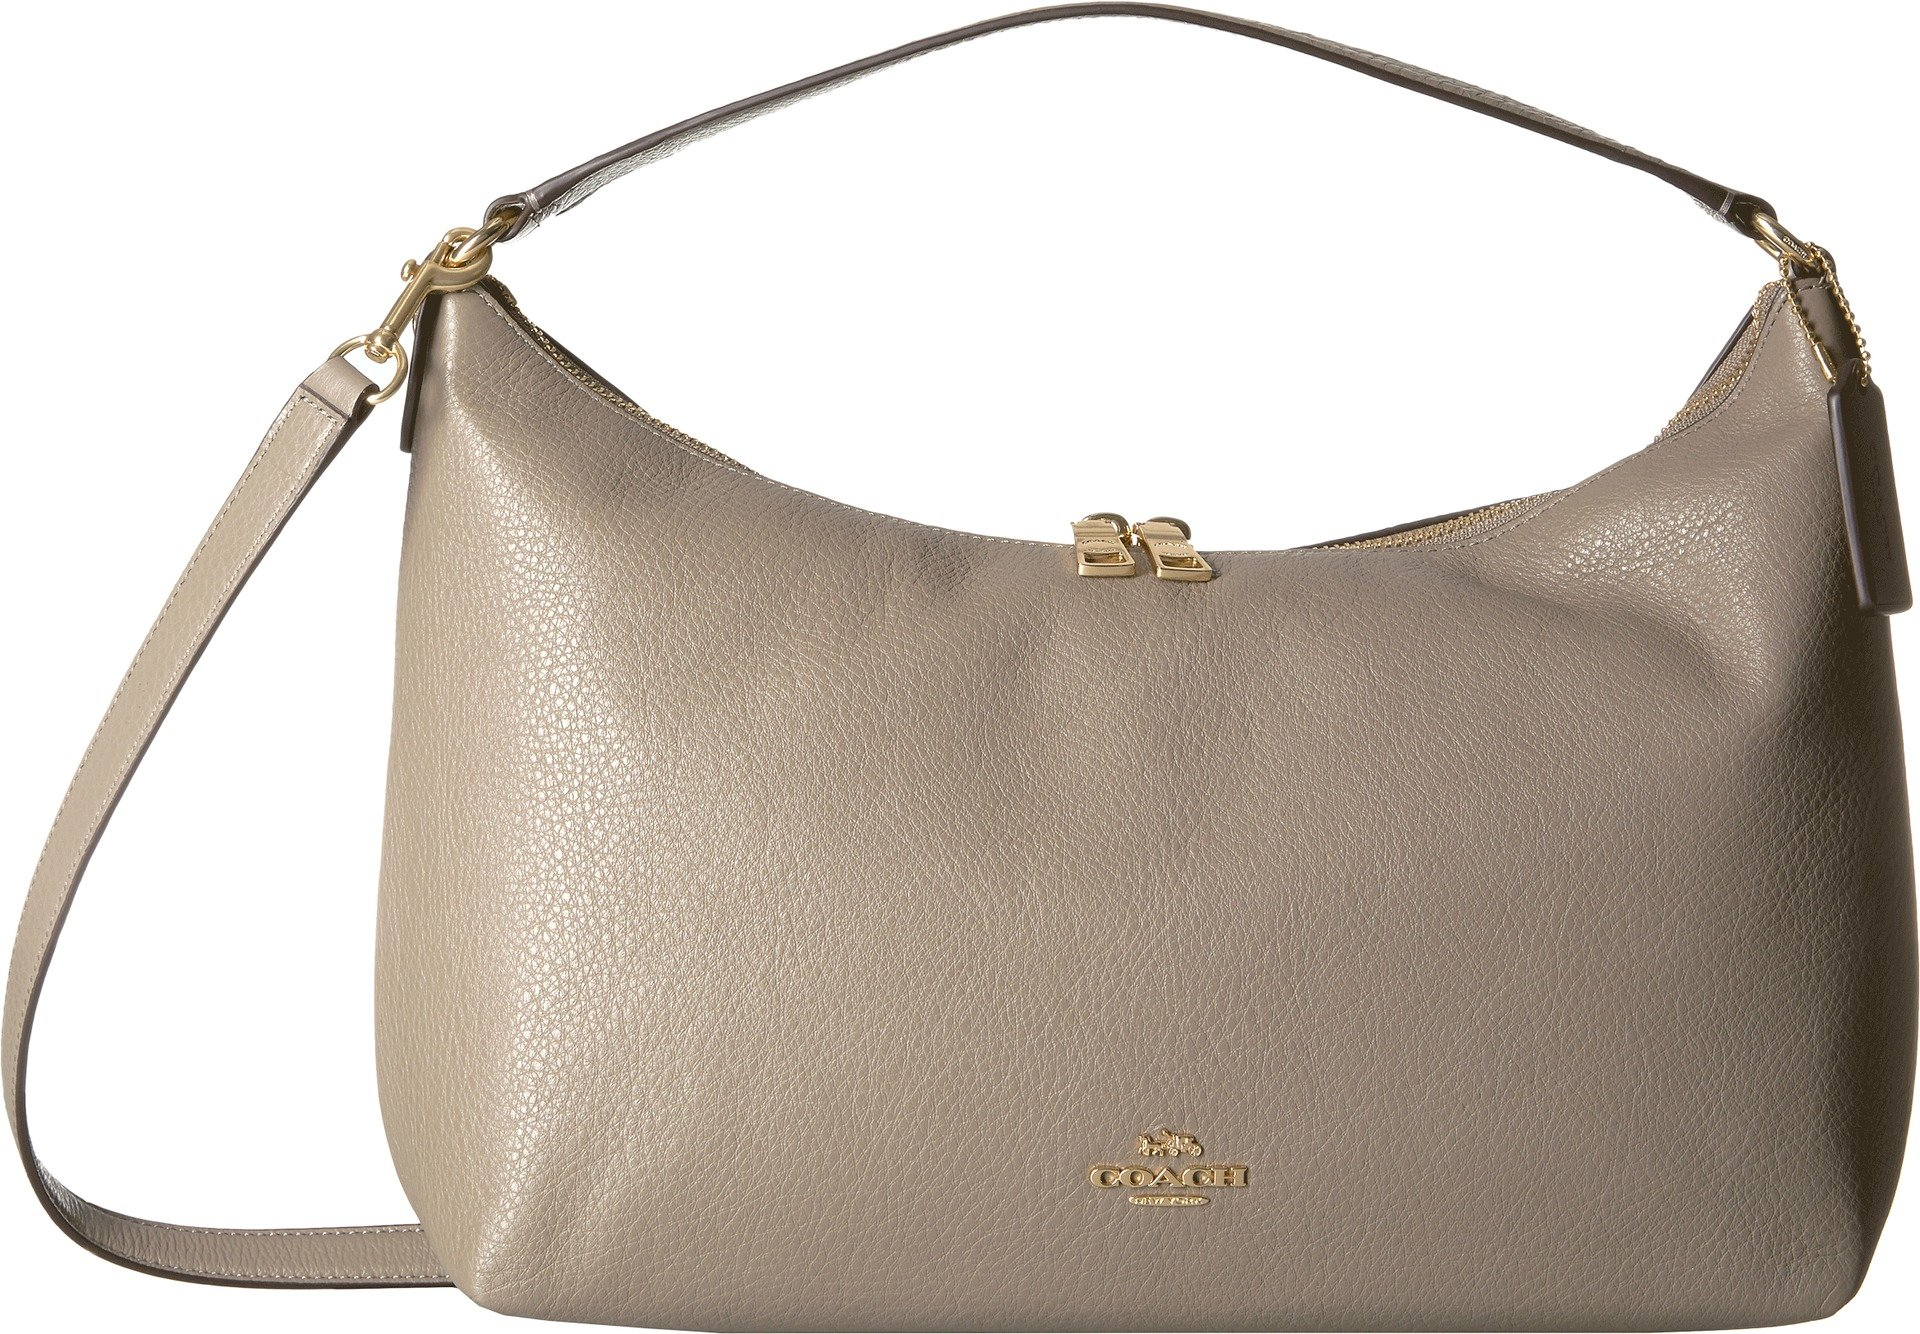 COACH Women's Pebbled Leather East/West Celeste Convertible Hobo Im/Fog One Size